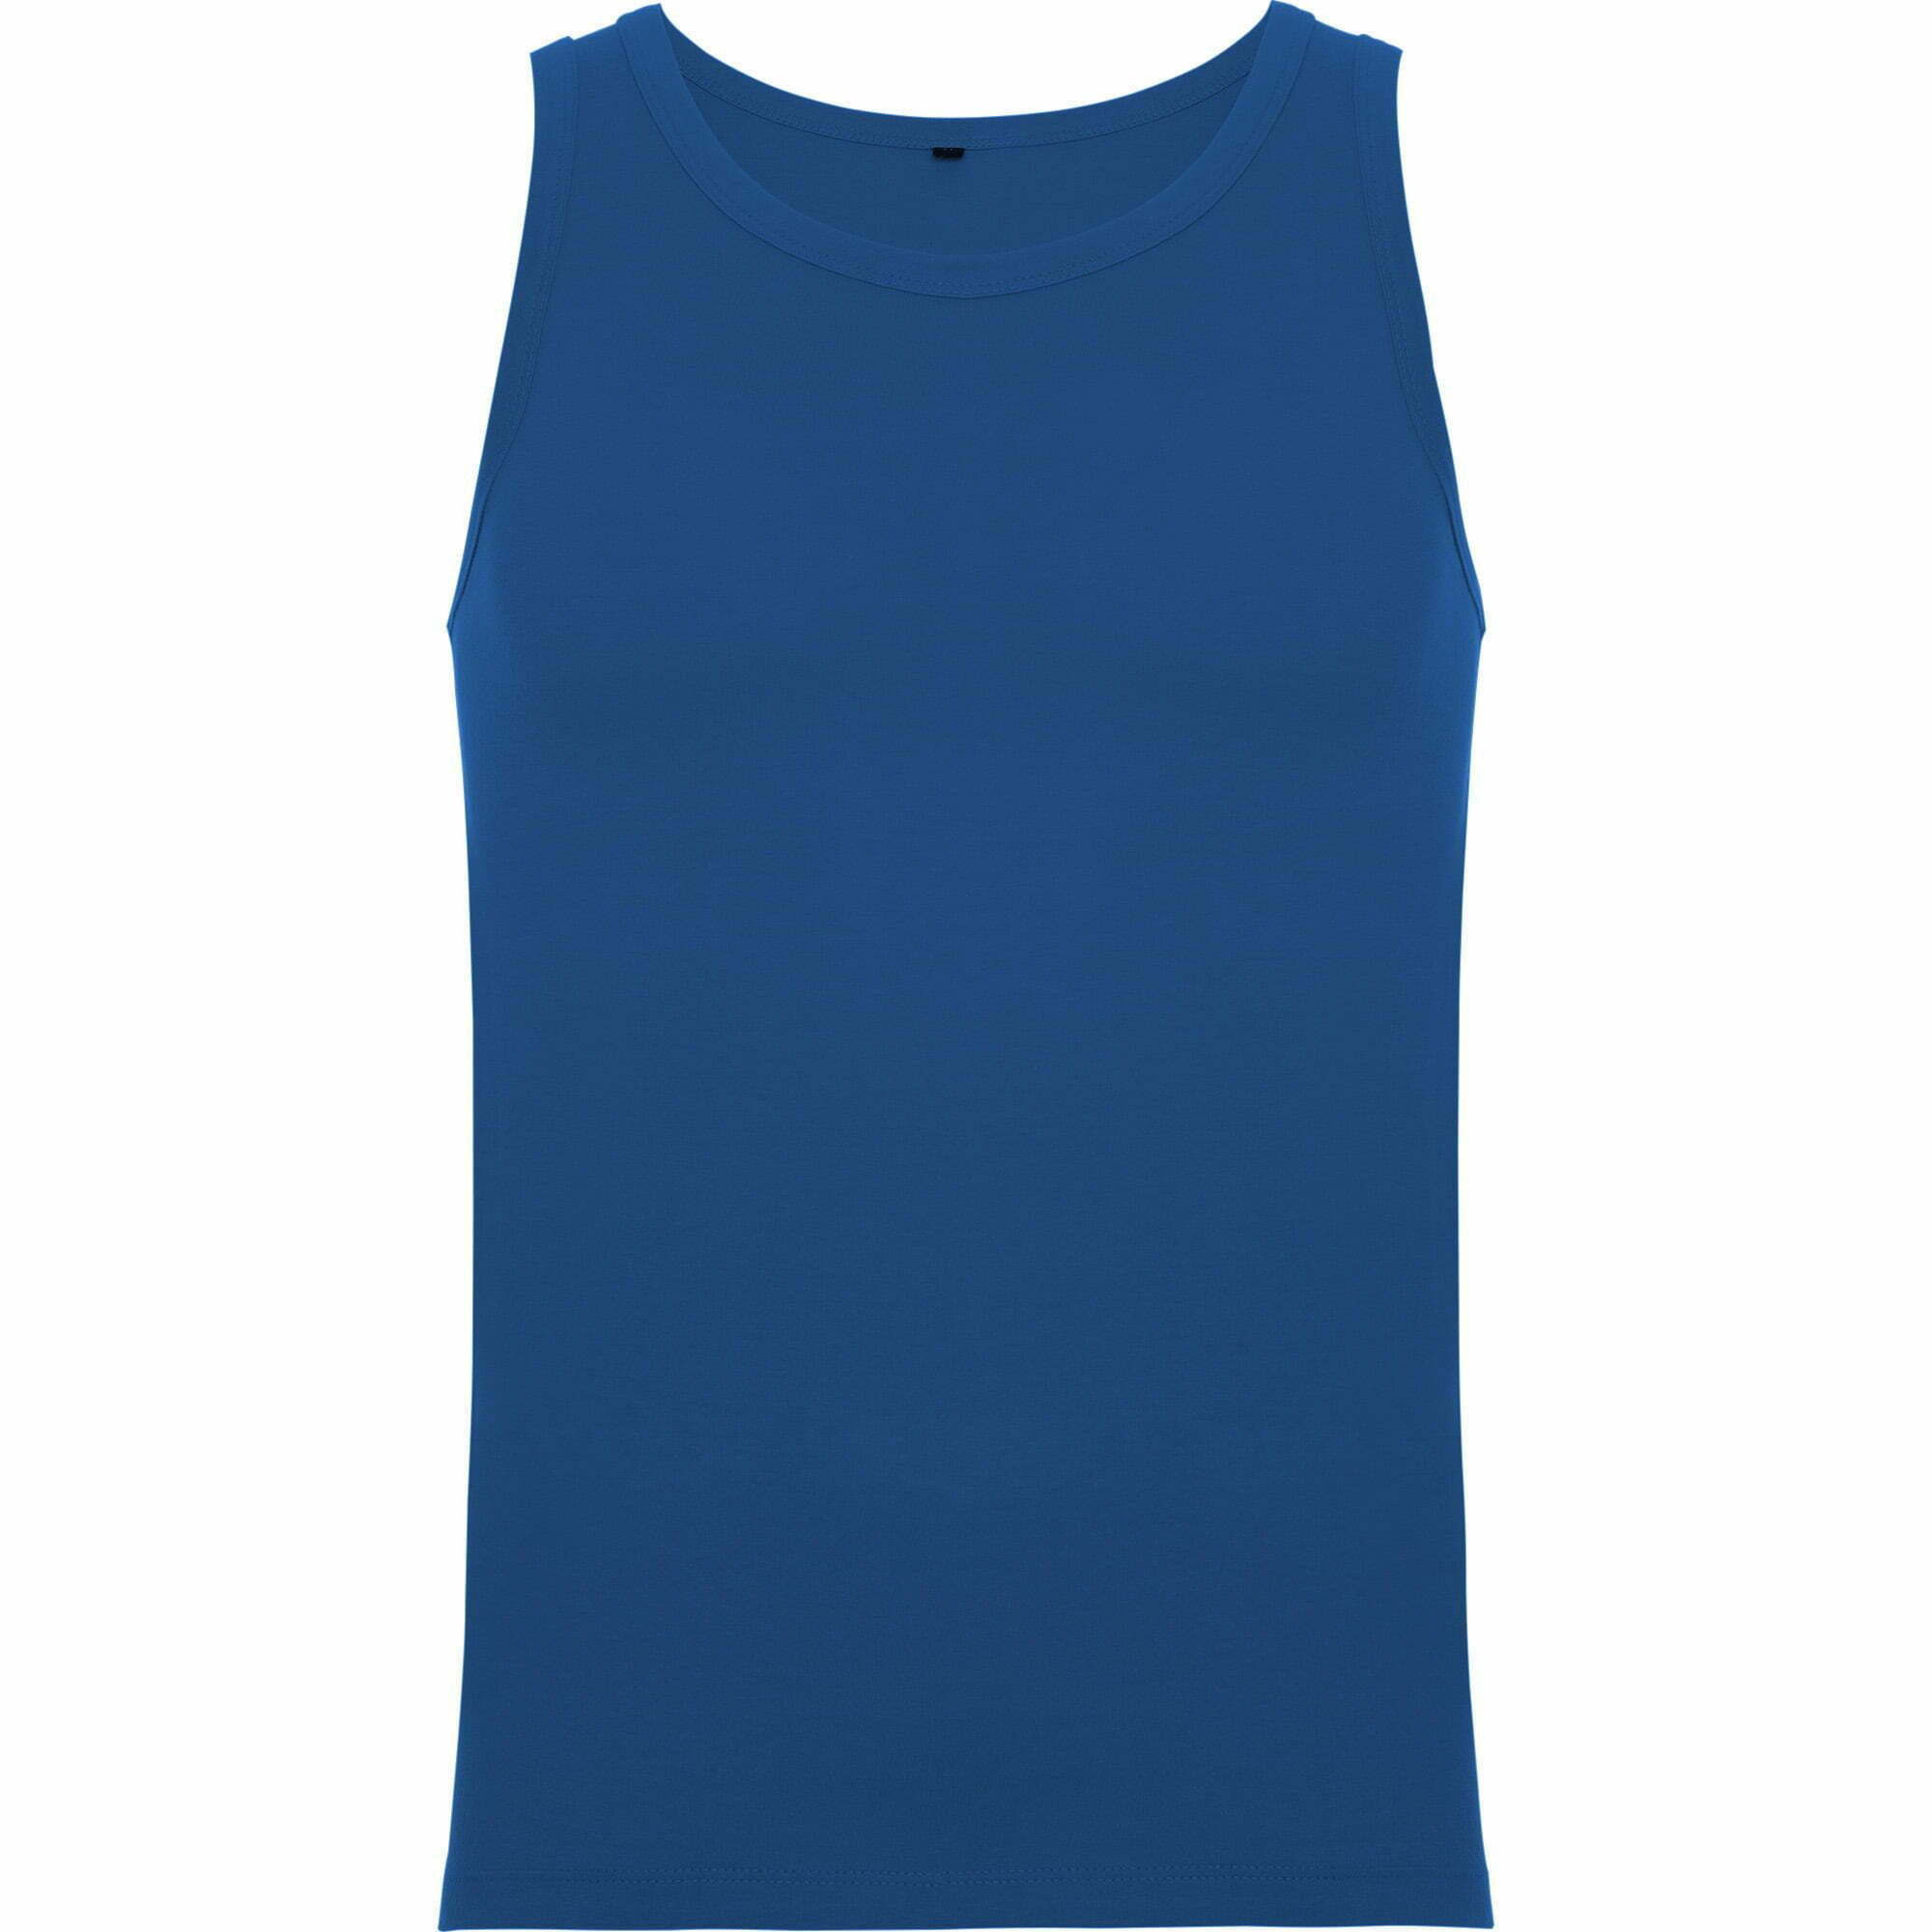 Camiseta infantil color azul - Texas 166545